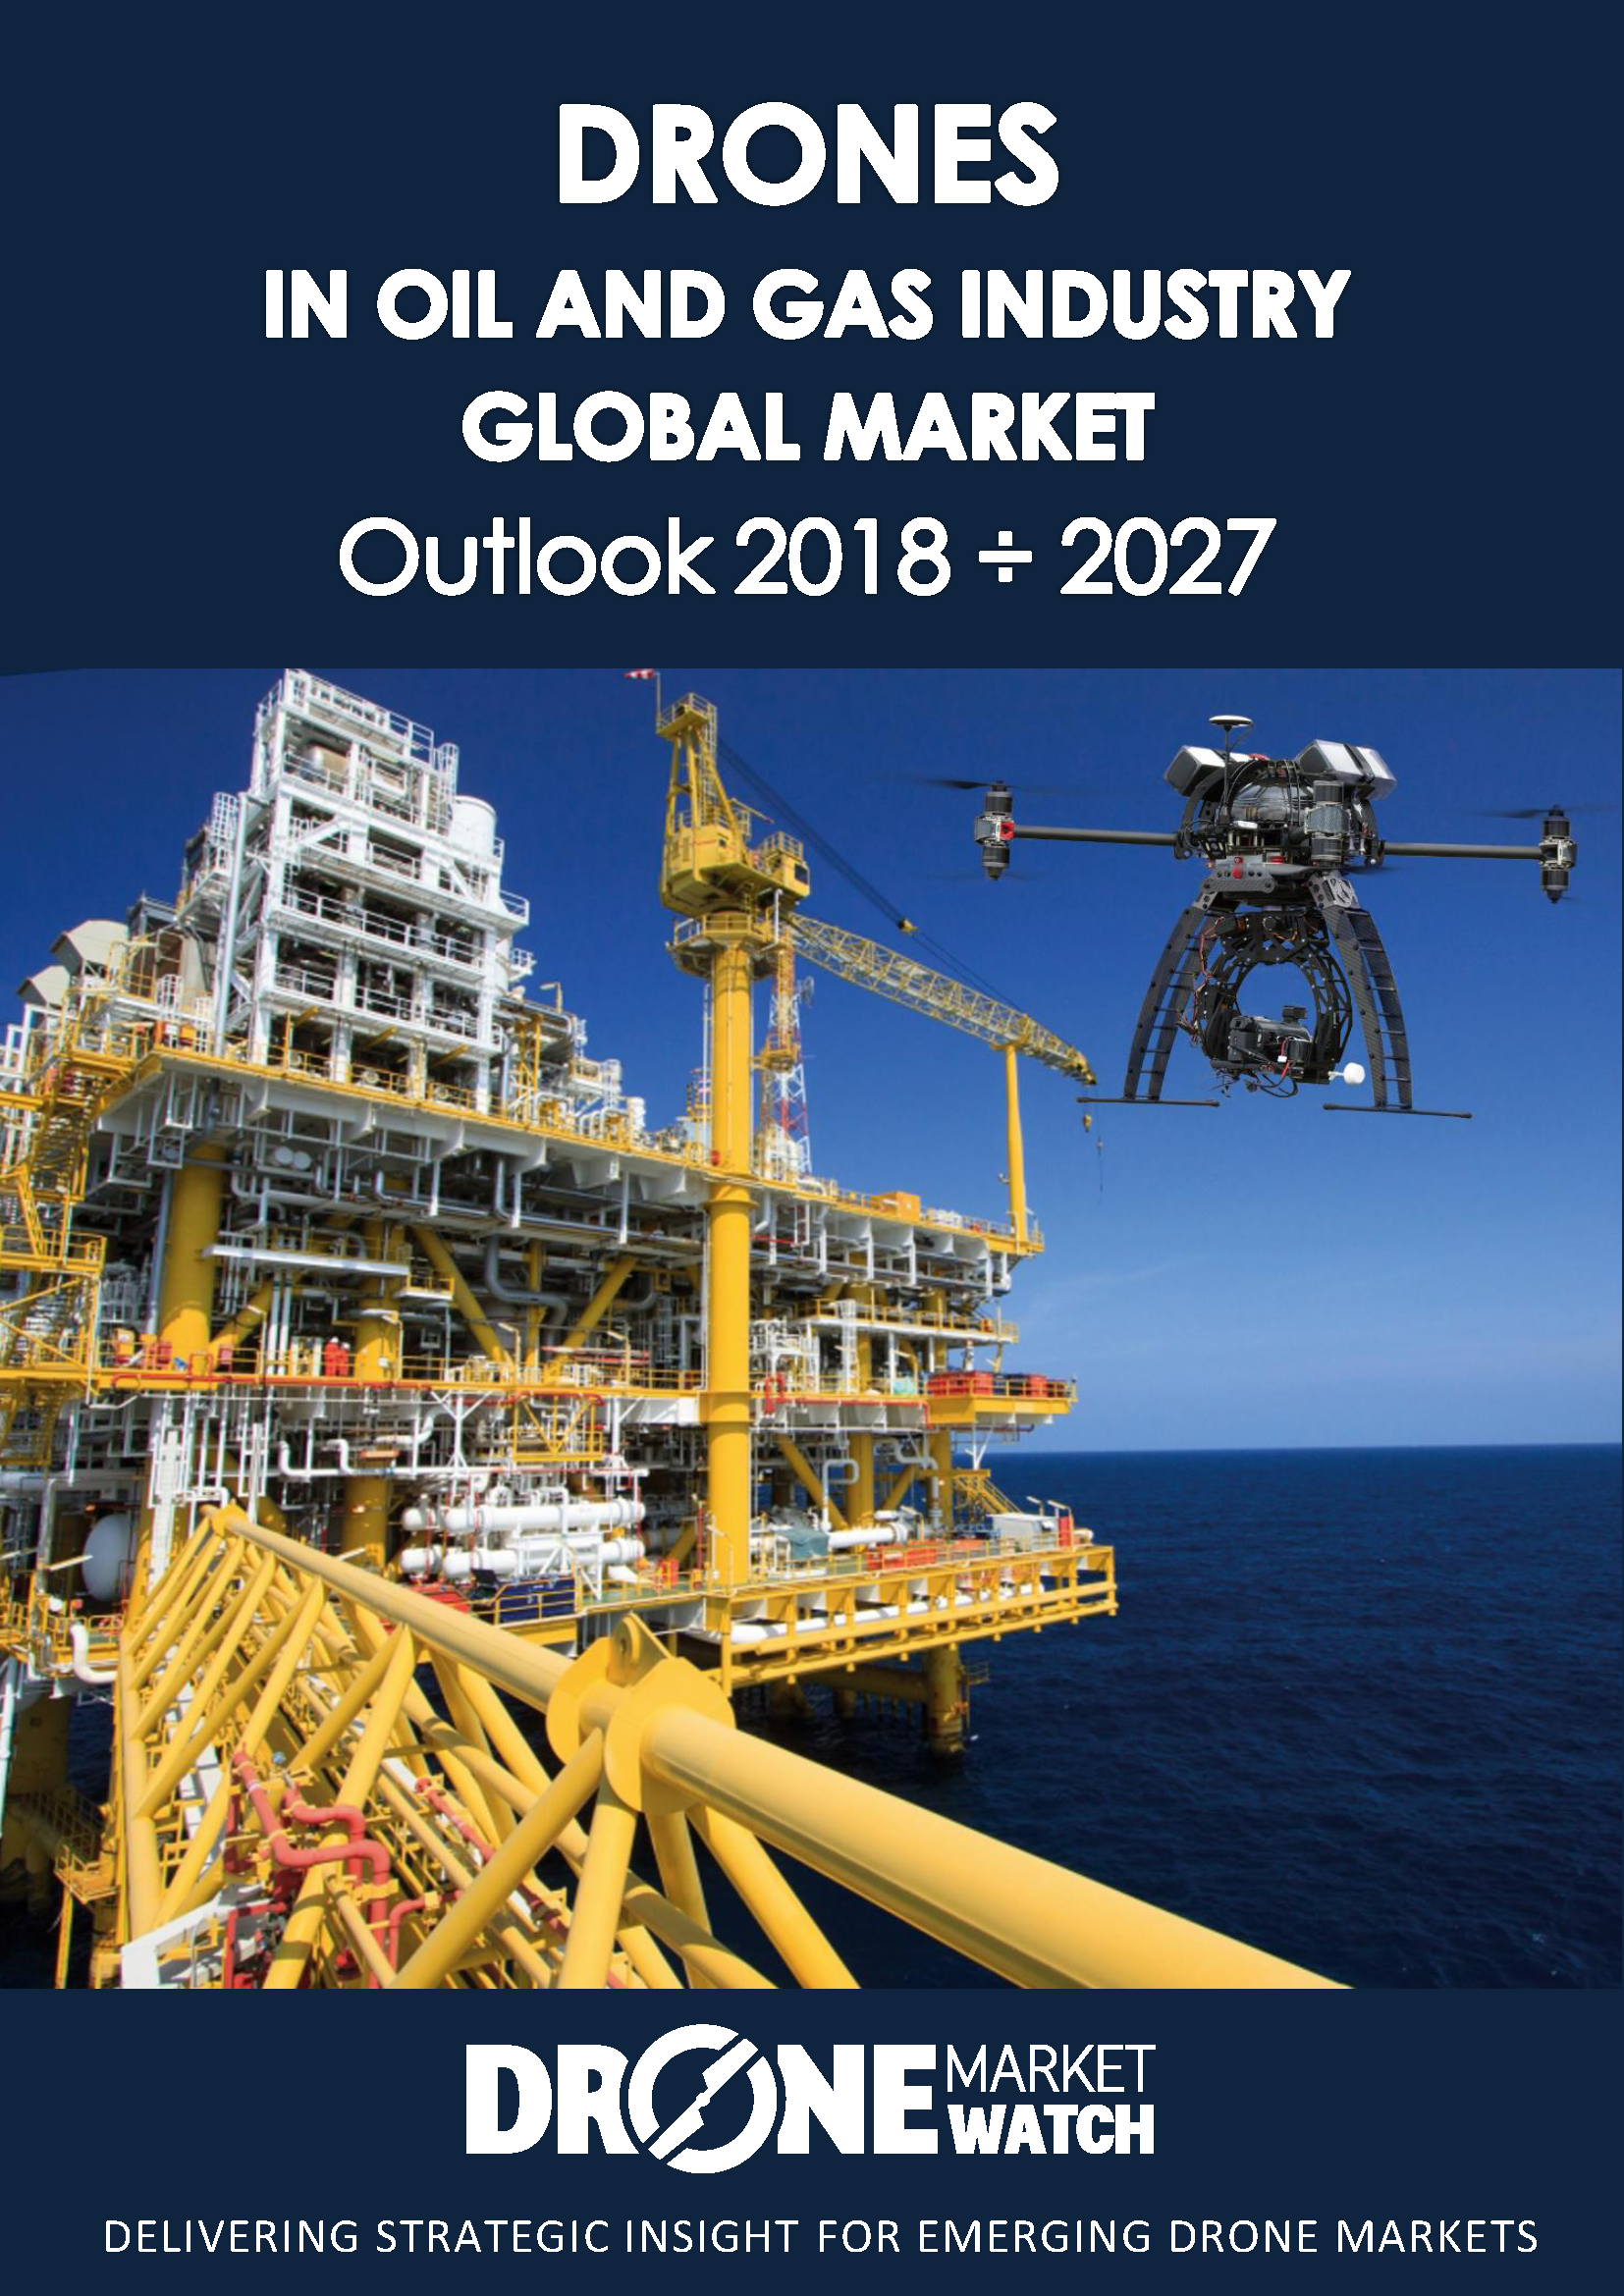 Drones in Oil and Gas Industry Global Market Outlook 2017 - 2026.jpg